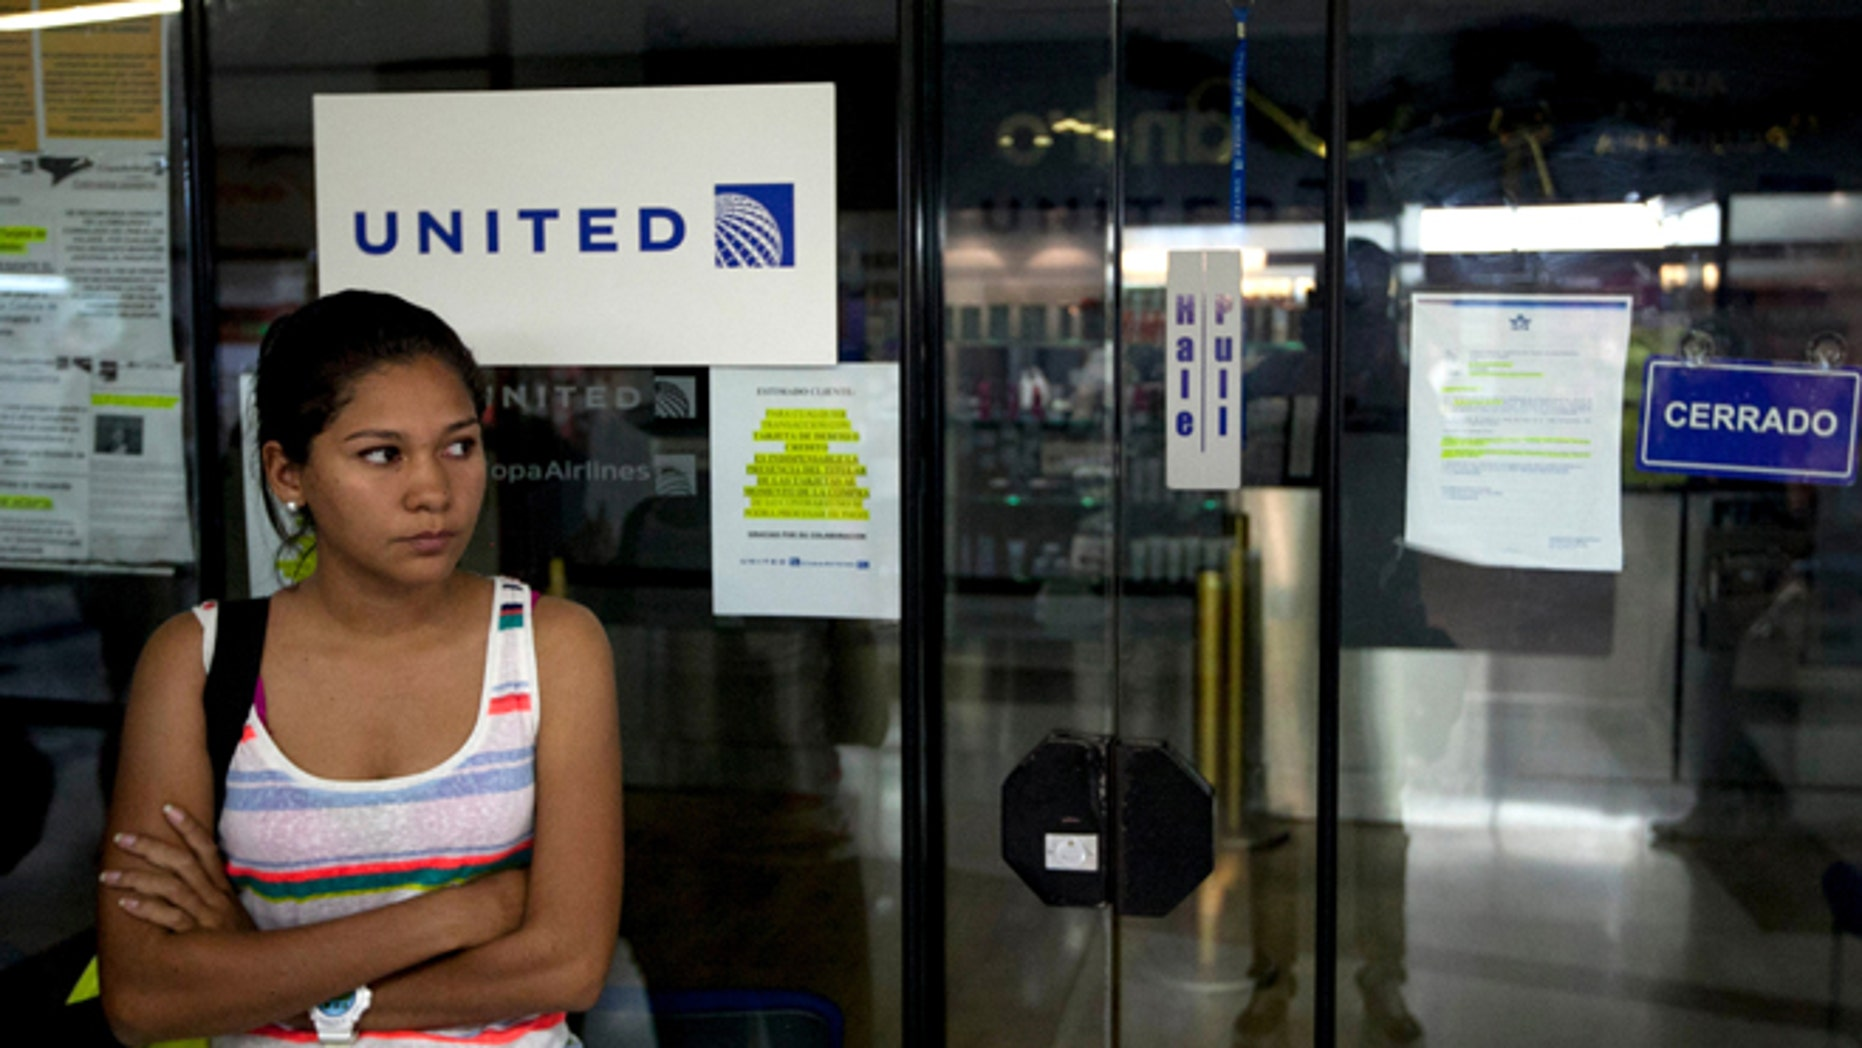 FILE- In this Jan. 24, 2014 file photo, a woman stands outside a closed United Airlines office in Caracas, Venezuela.  Alitalia and Panama's Copa Airlines this May 2014, became the latest carriers to cut flights to Caracas over the socialist government's refusal to allow them to repatriate proceeds from ticket sales inside Venezuela. Foreign airlines say they have the equivalent of $4 billion trapped in the country when sales are converted at the official exchange rate of 6.3 bolivars per U.S. dollar. (AP Photo/Alejandro Cegarra)